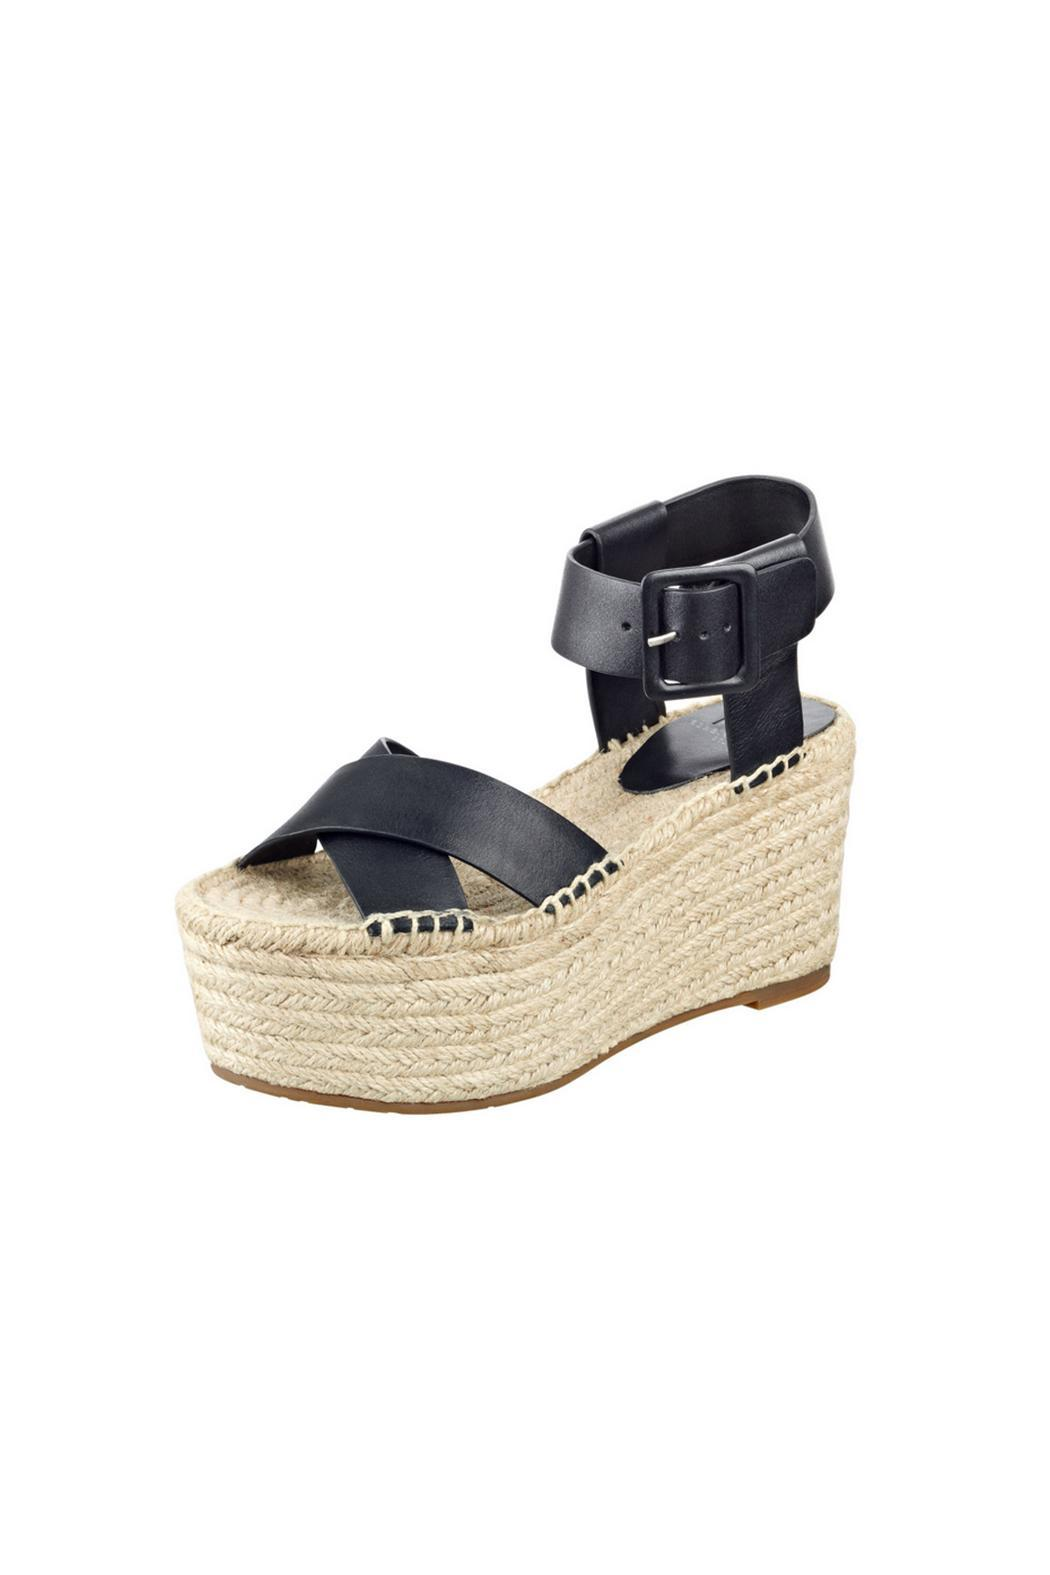 8667a692ce9 Marc Fisher LTD Randall Platform Sandal from Alexandria by Bishop ...